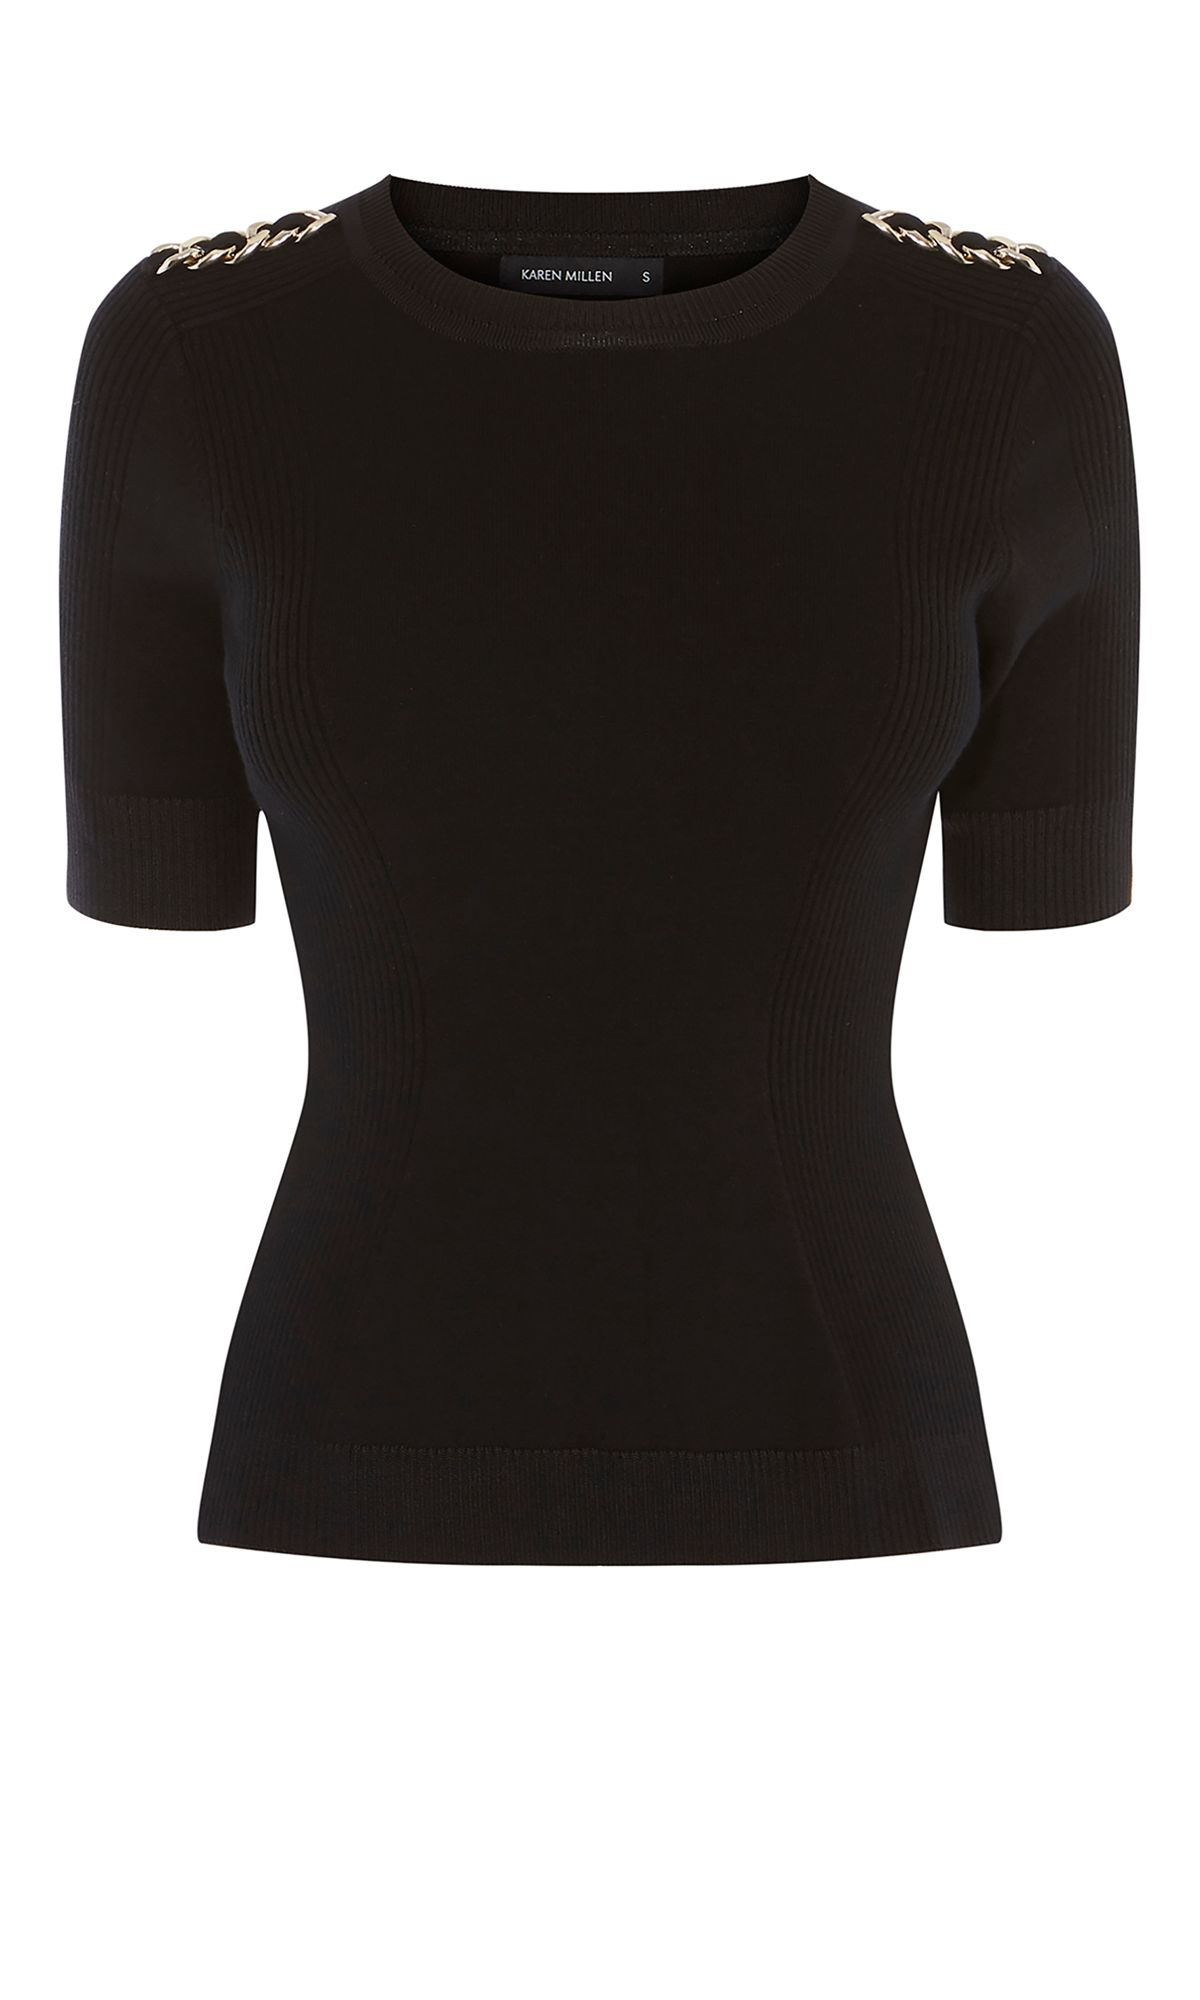 Karen Millen Chain Knitted Top, Black